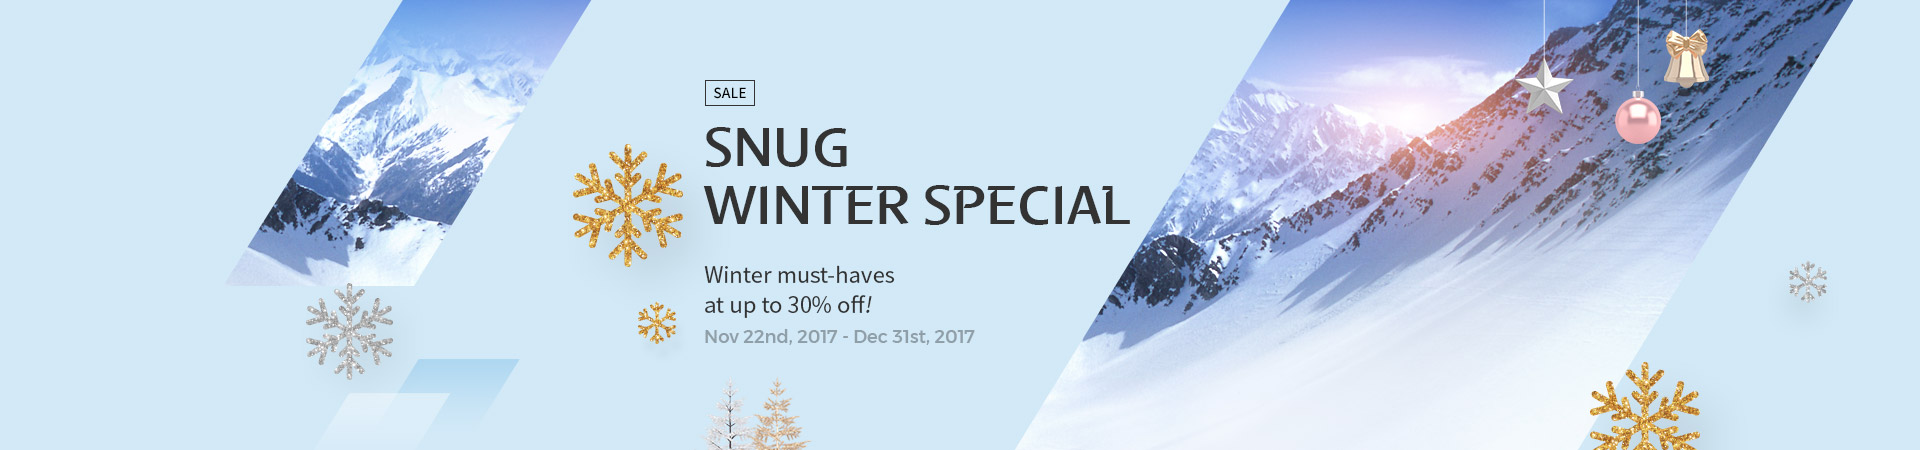 SNUG WINTER SPECIAL